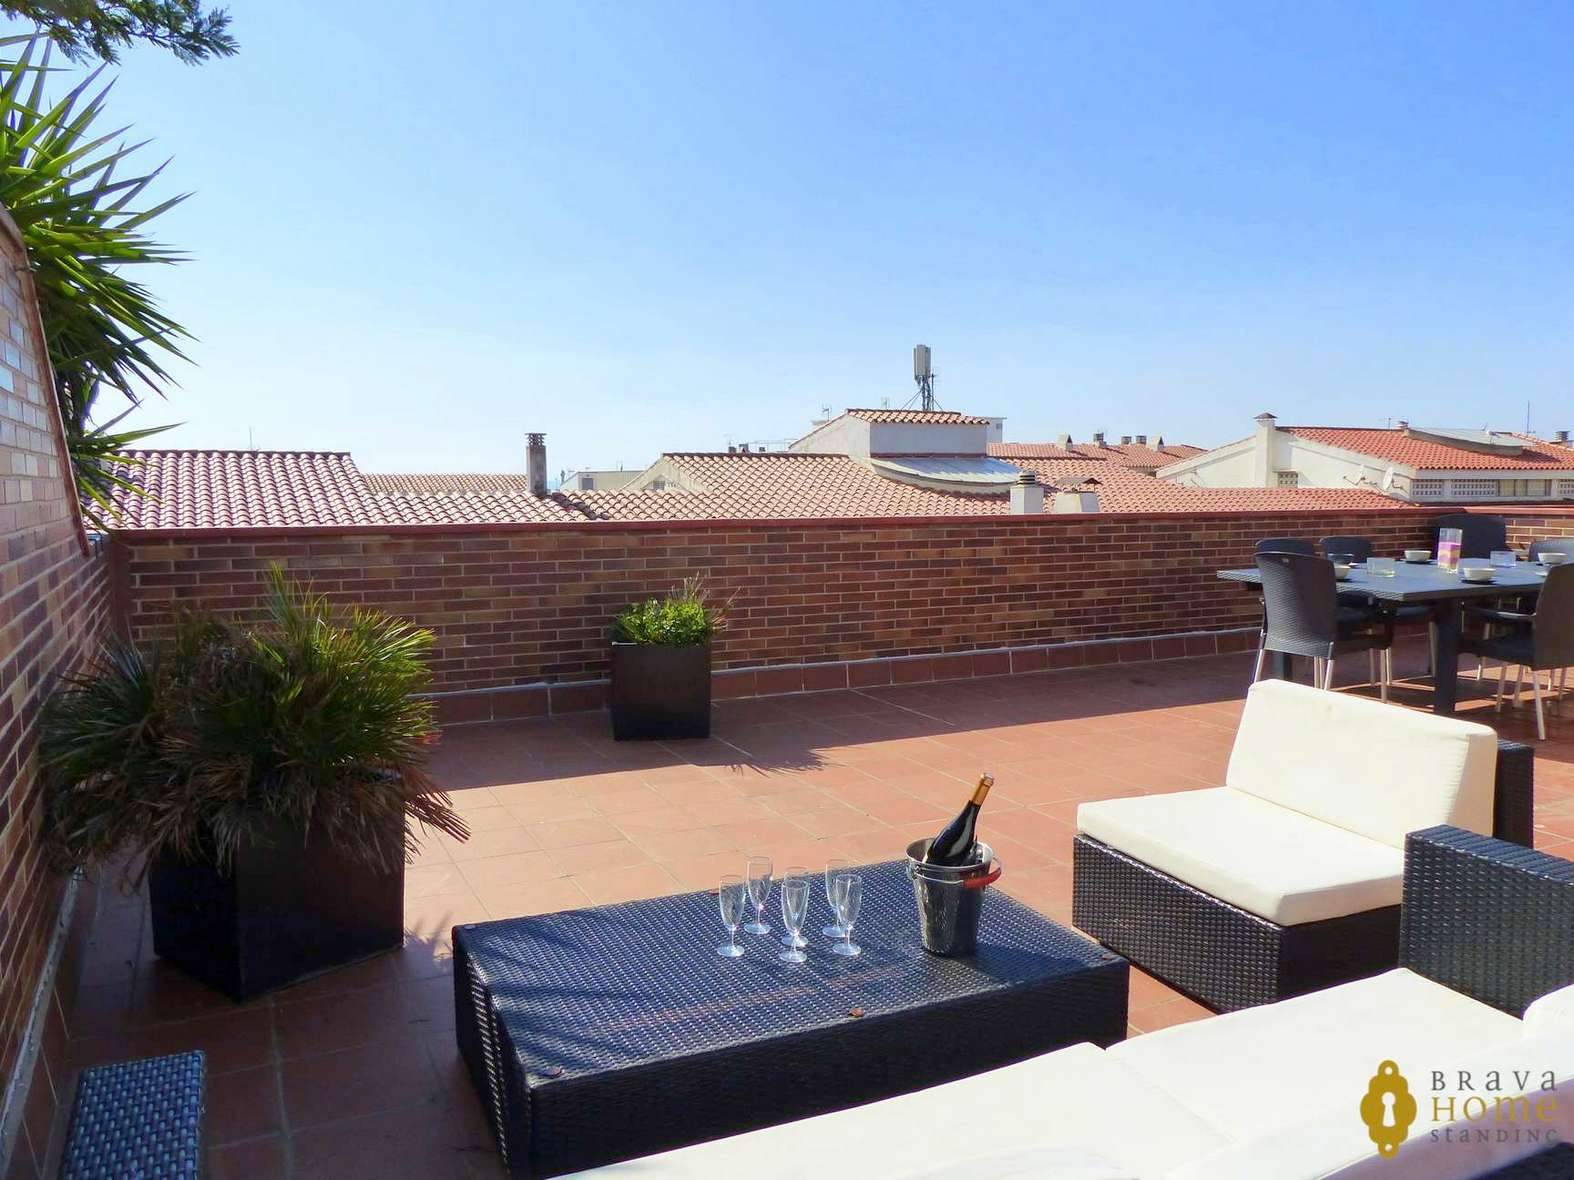 BEAUTIFUL APARTMENT WITH LARGE TERRACE AND POOL FOR SALE IN ROSAS